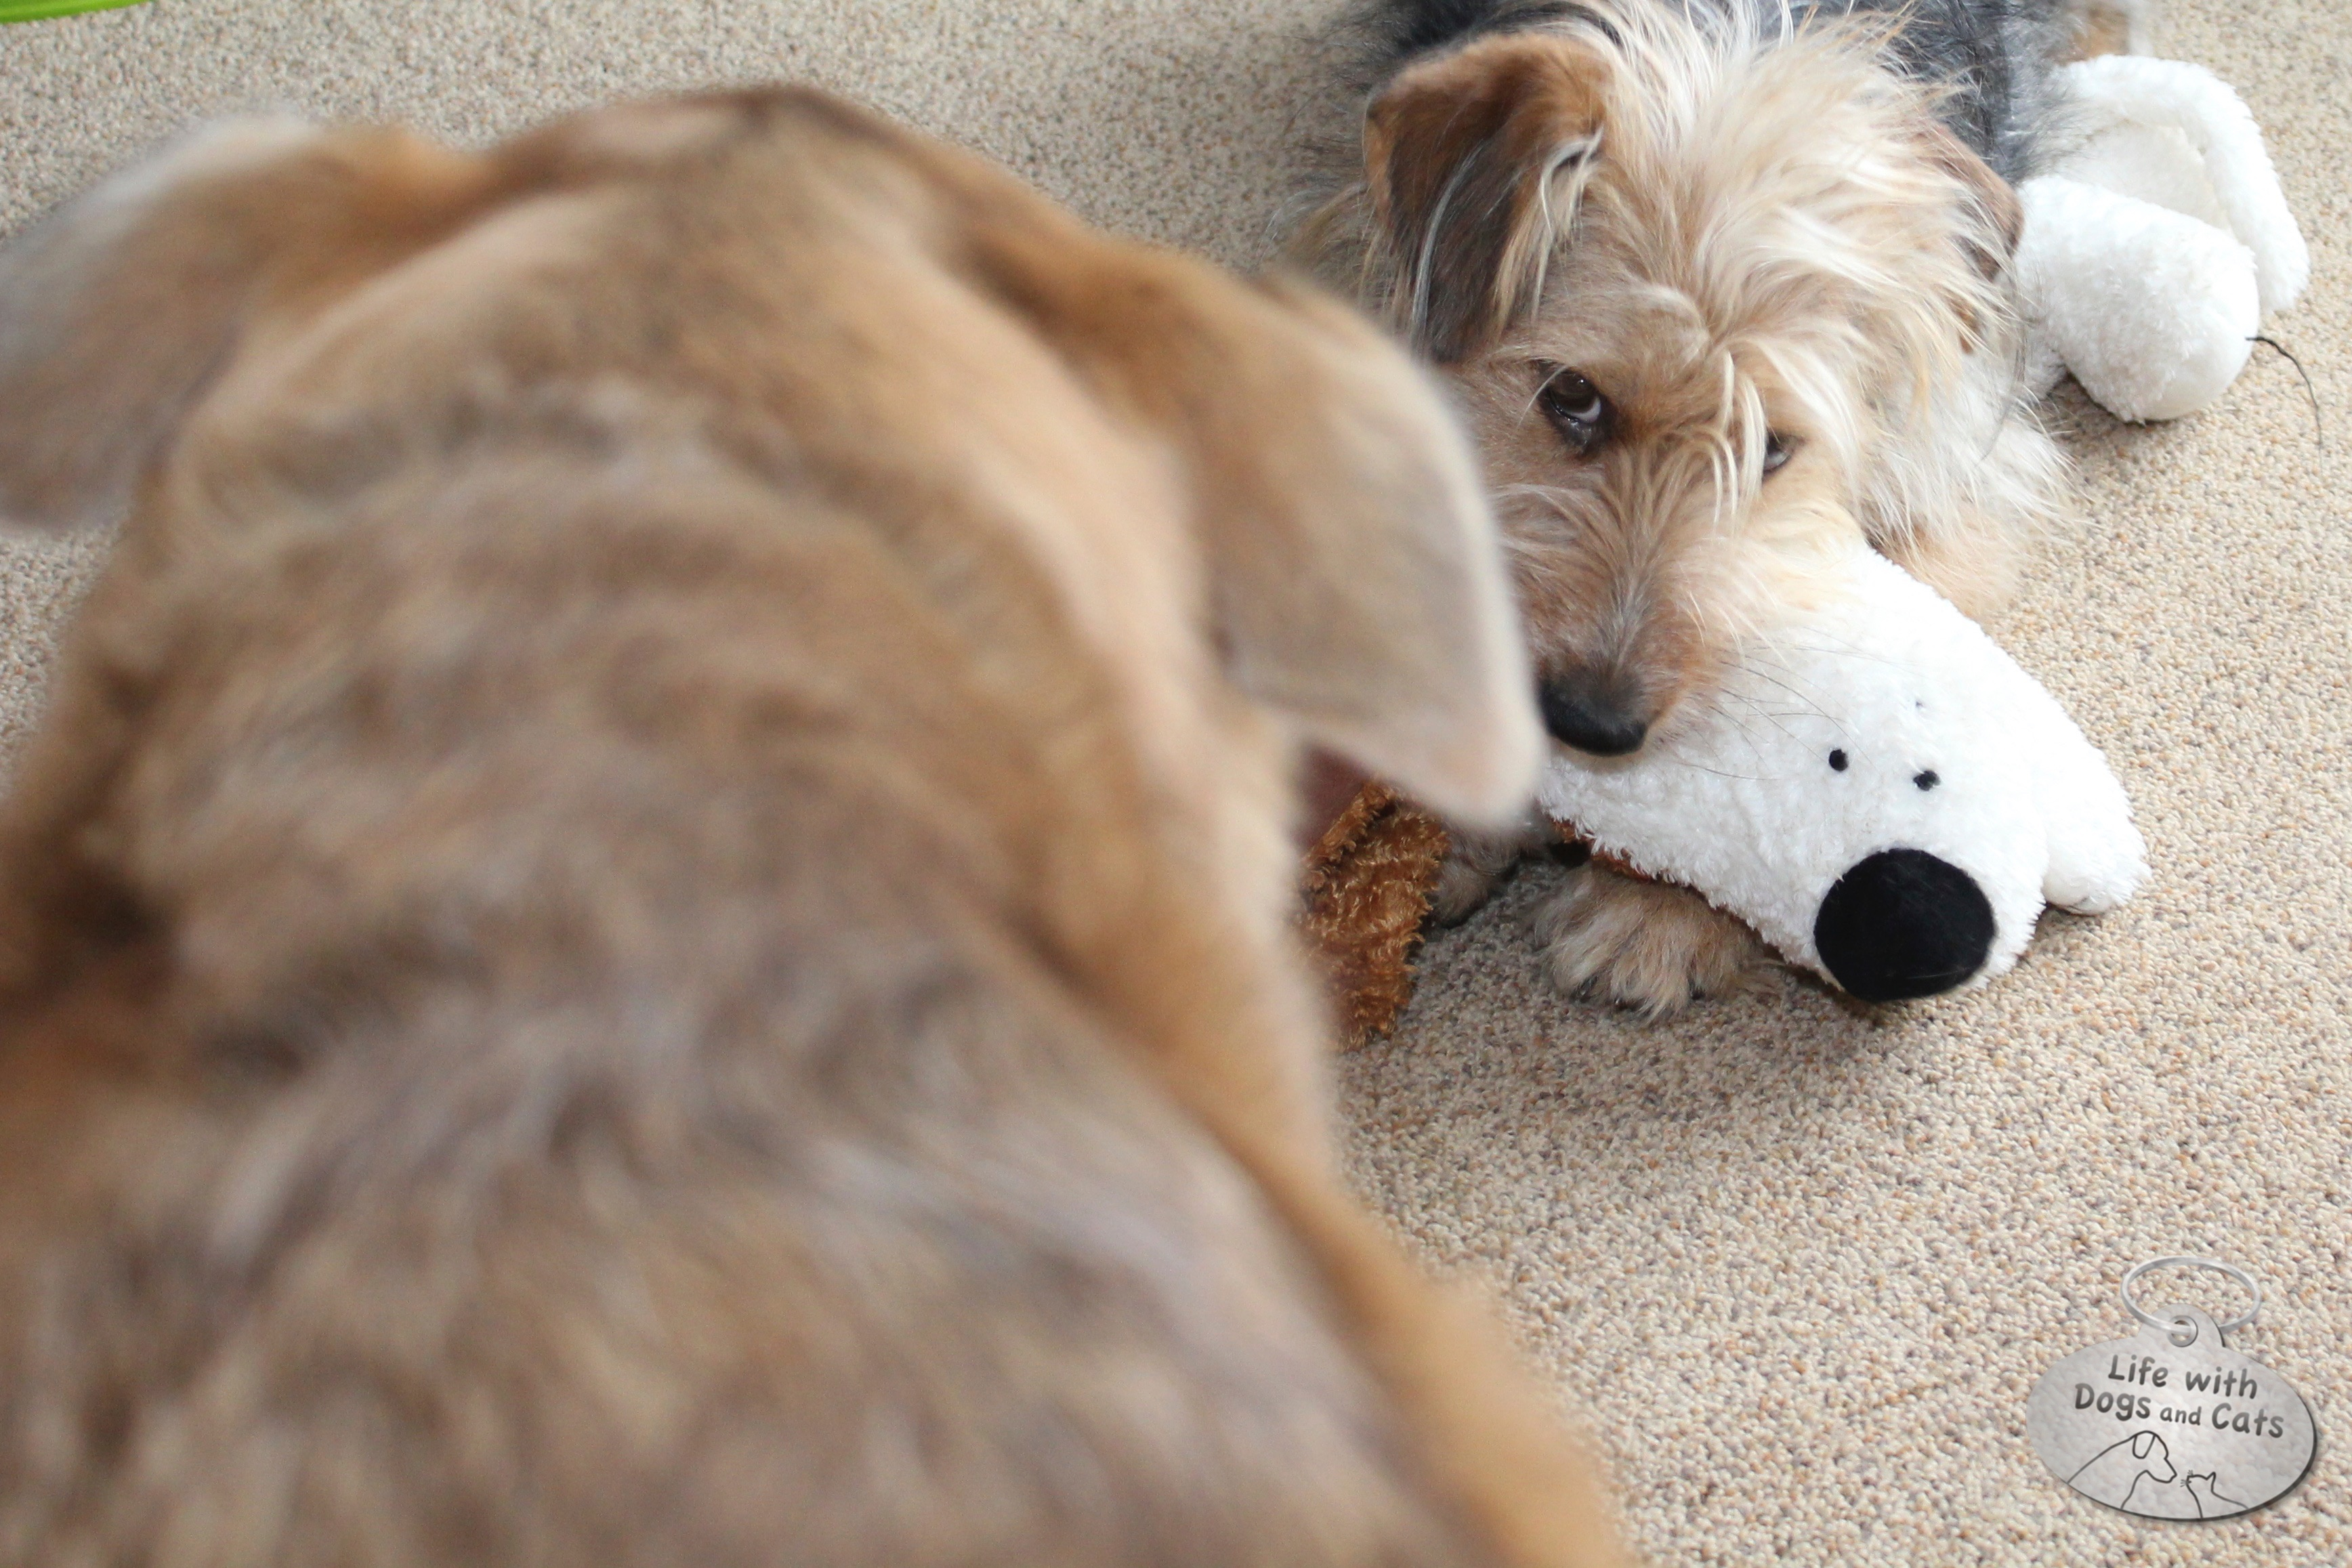 Tucker nearly always won when ownership of plush toys was debated.